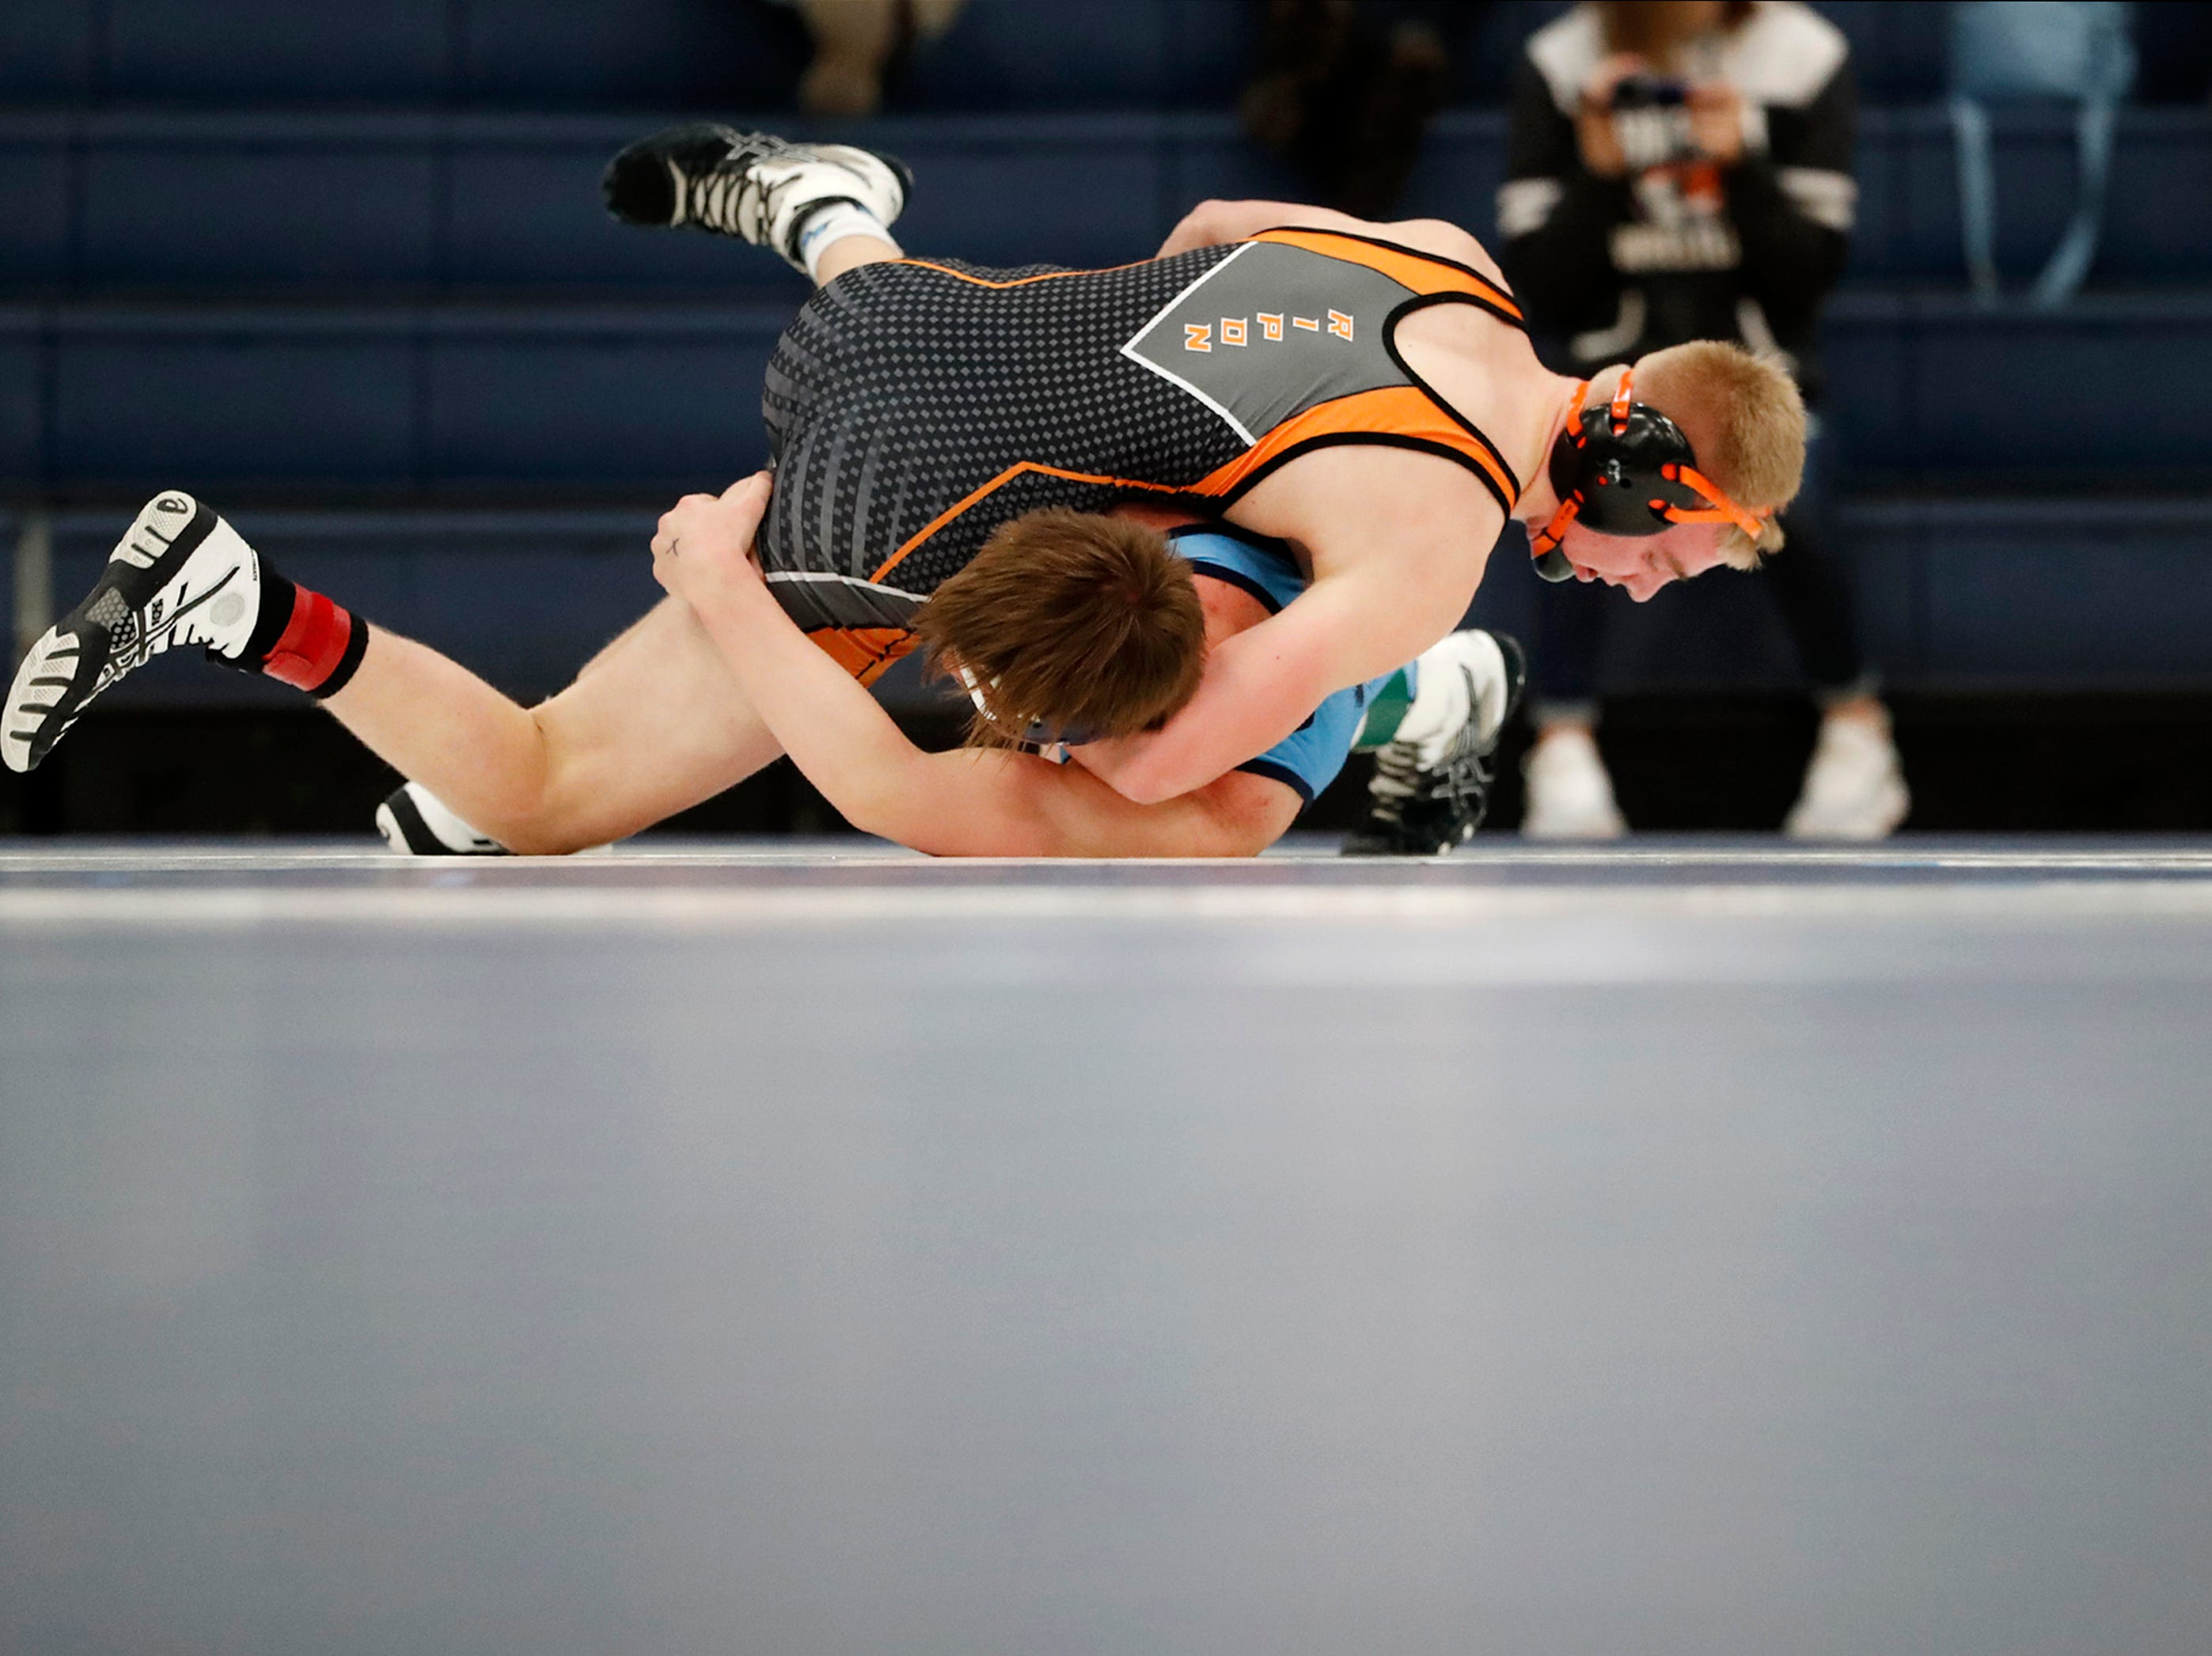 Little Chute's Logan Lex tries to escape Ripon's Brady Kissinger during their 160-pound match at the D2 wrestling regional Saturday Feb. 9, 2019, in Little Chute, Wis.